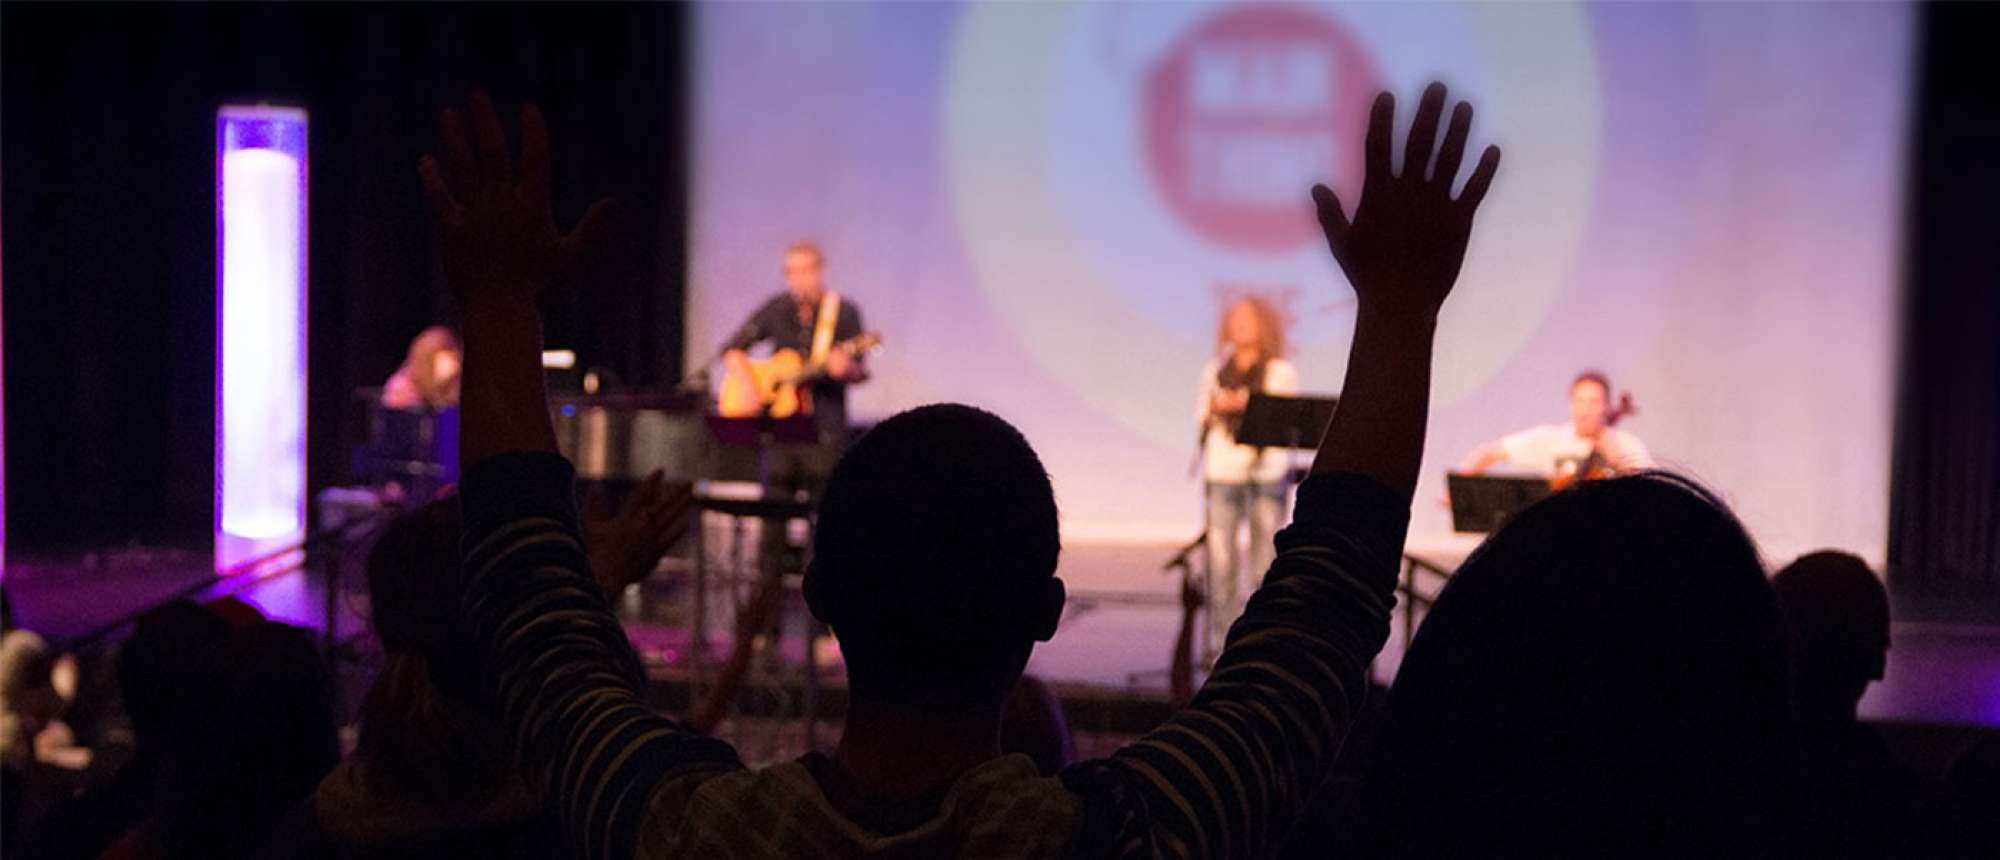 Person worshipping